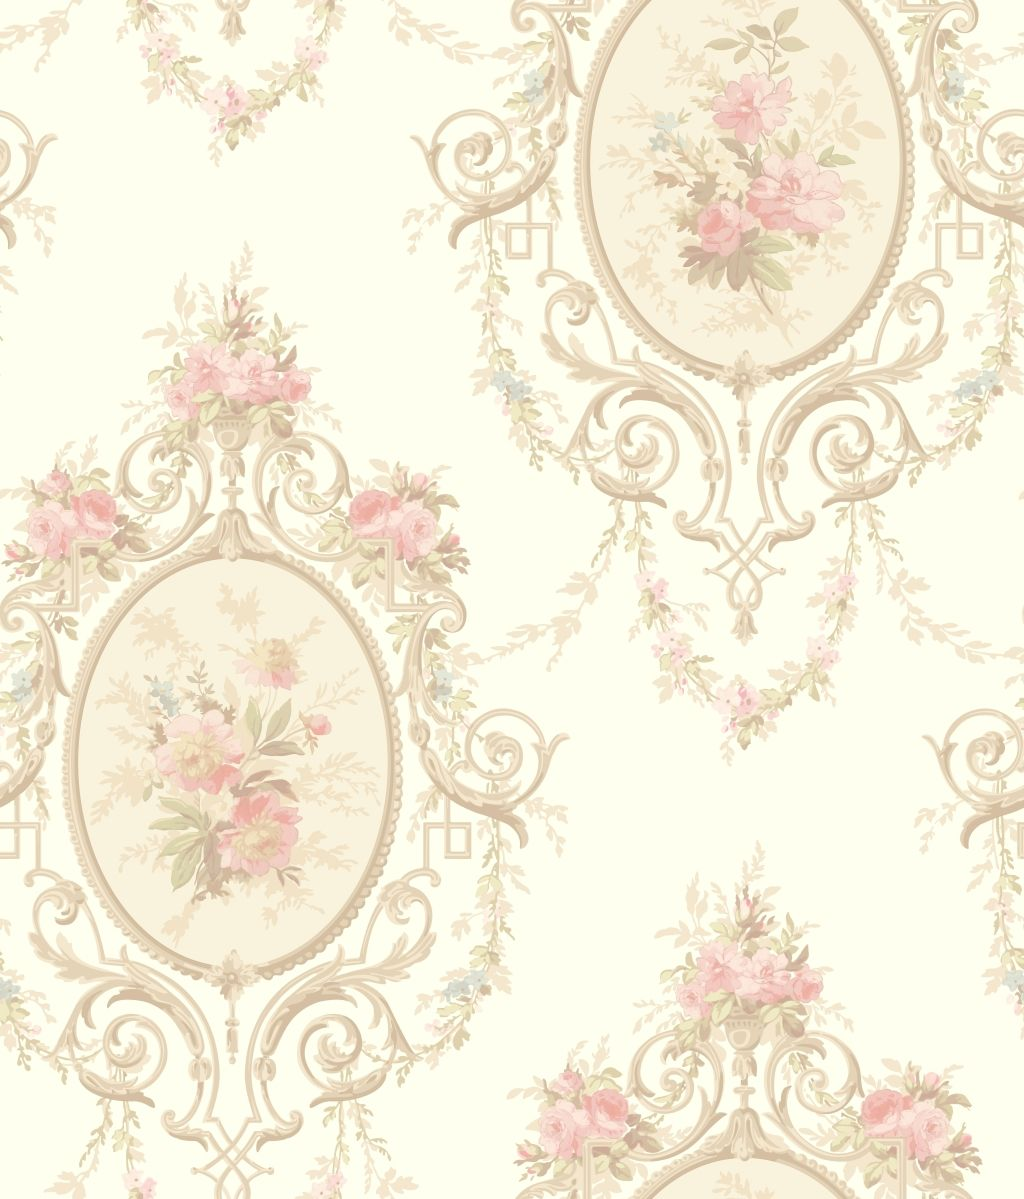 White Whitedecor Victoriandecor Vintage English Floral